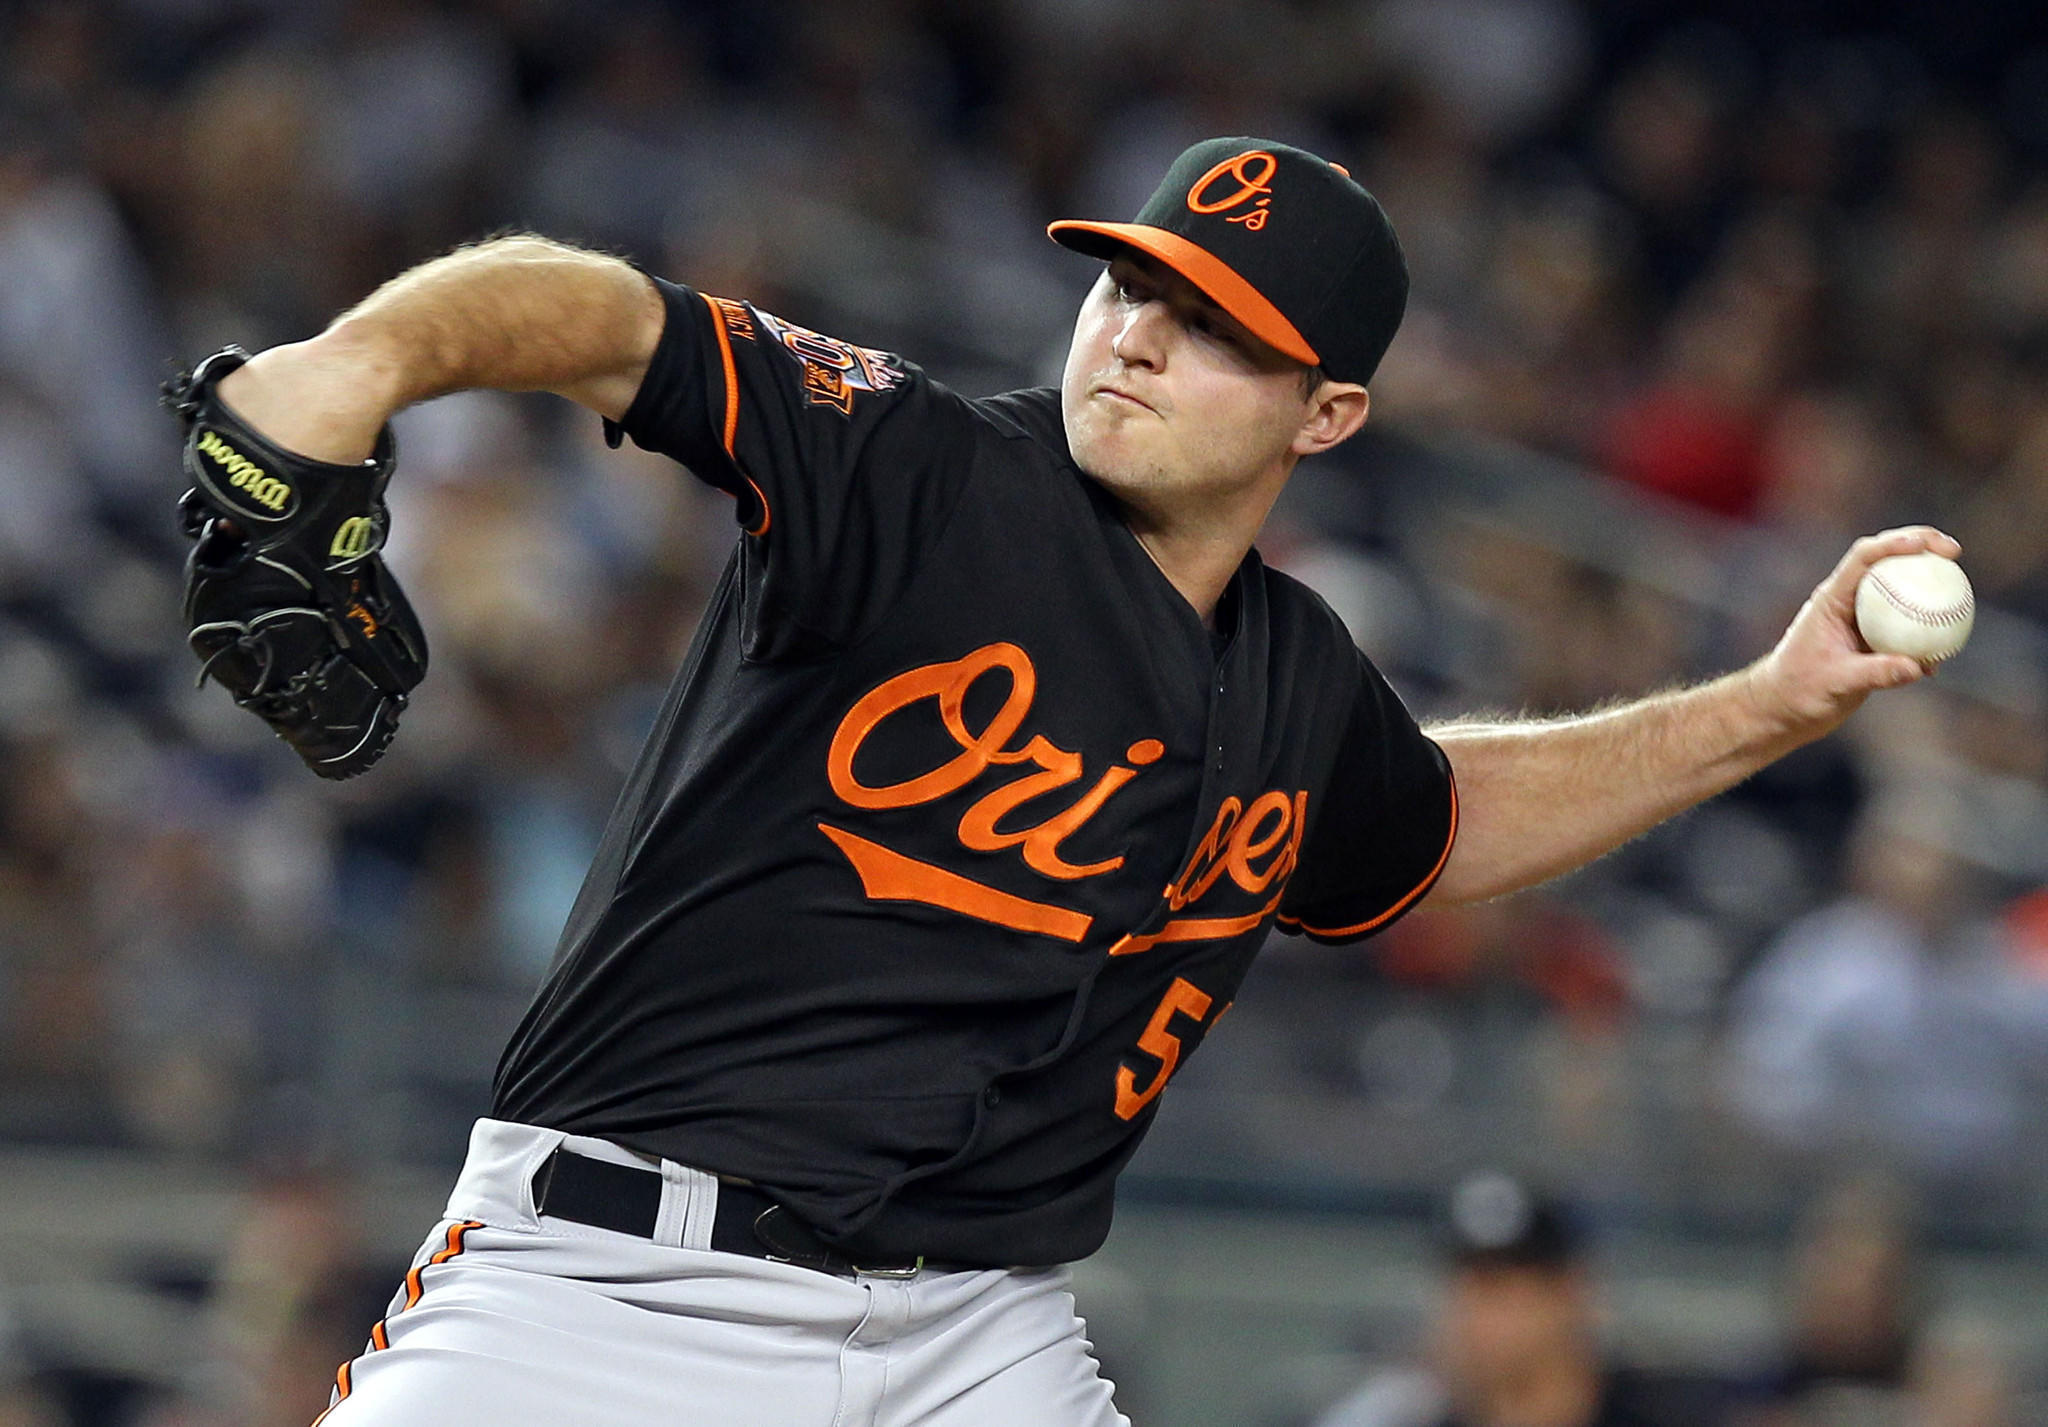 Zach Britton had only his second blown save of the season Friday night at Yankee Stadium.